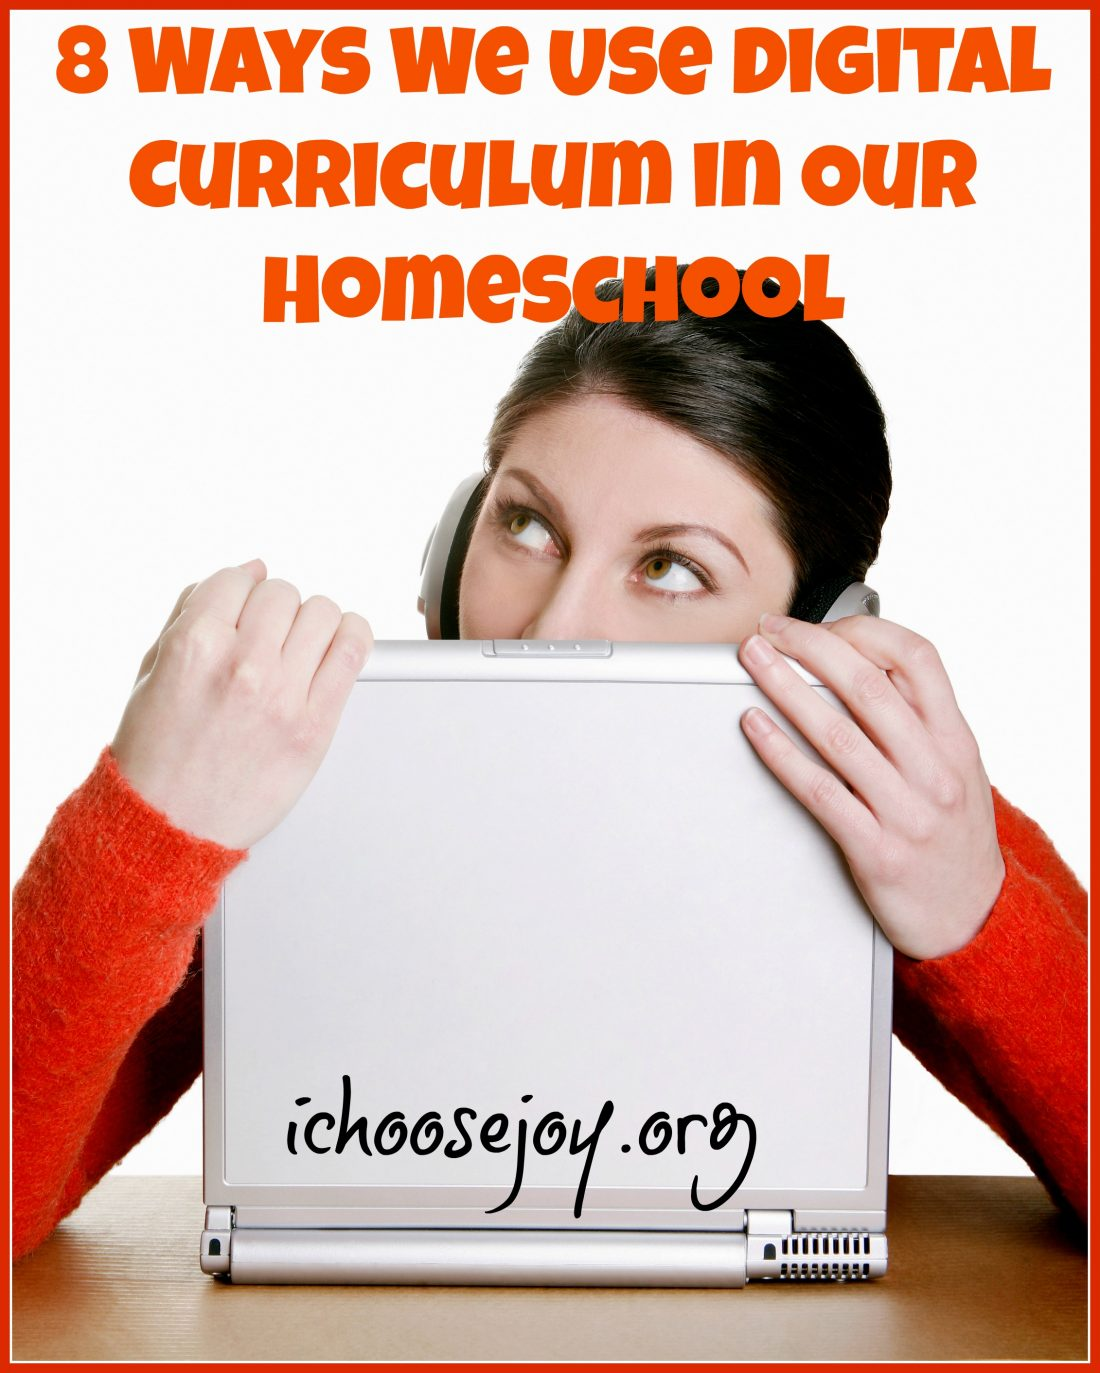 8 Ways We Use Digital Curriculum in Our Homeschool